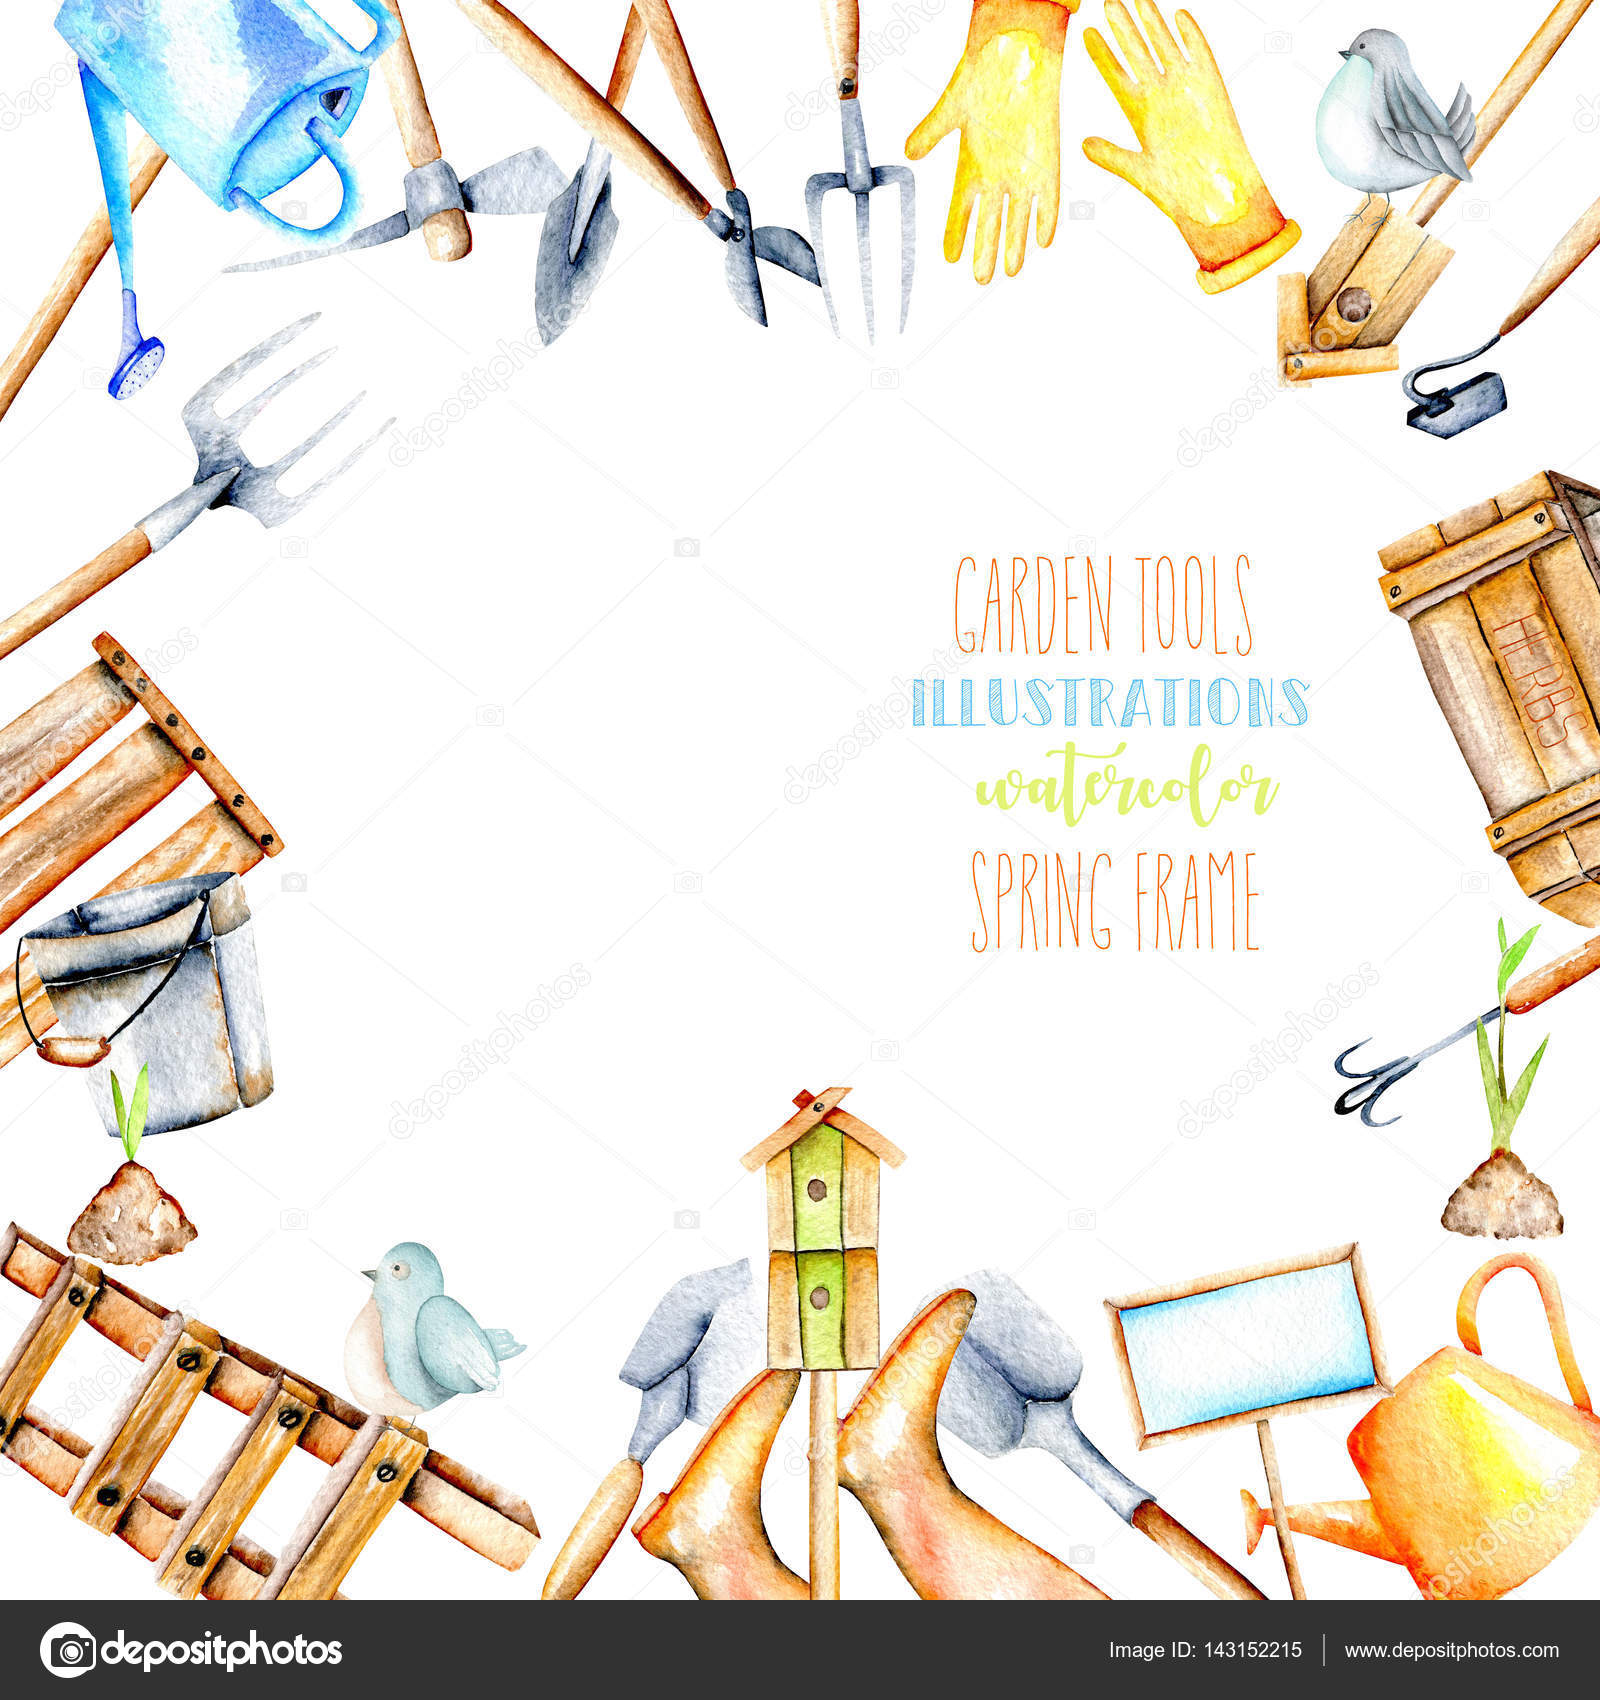 Frame Border With Watercolor Objects Of Garden Tools Hand Drawn Isolated On A White Background Photo By NastyaSklyarova